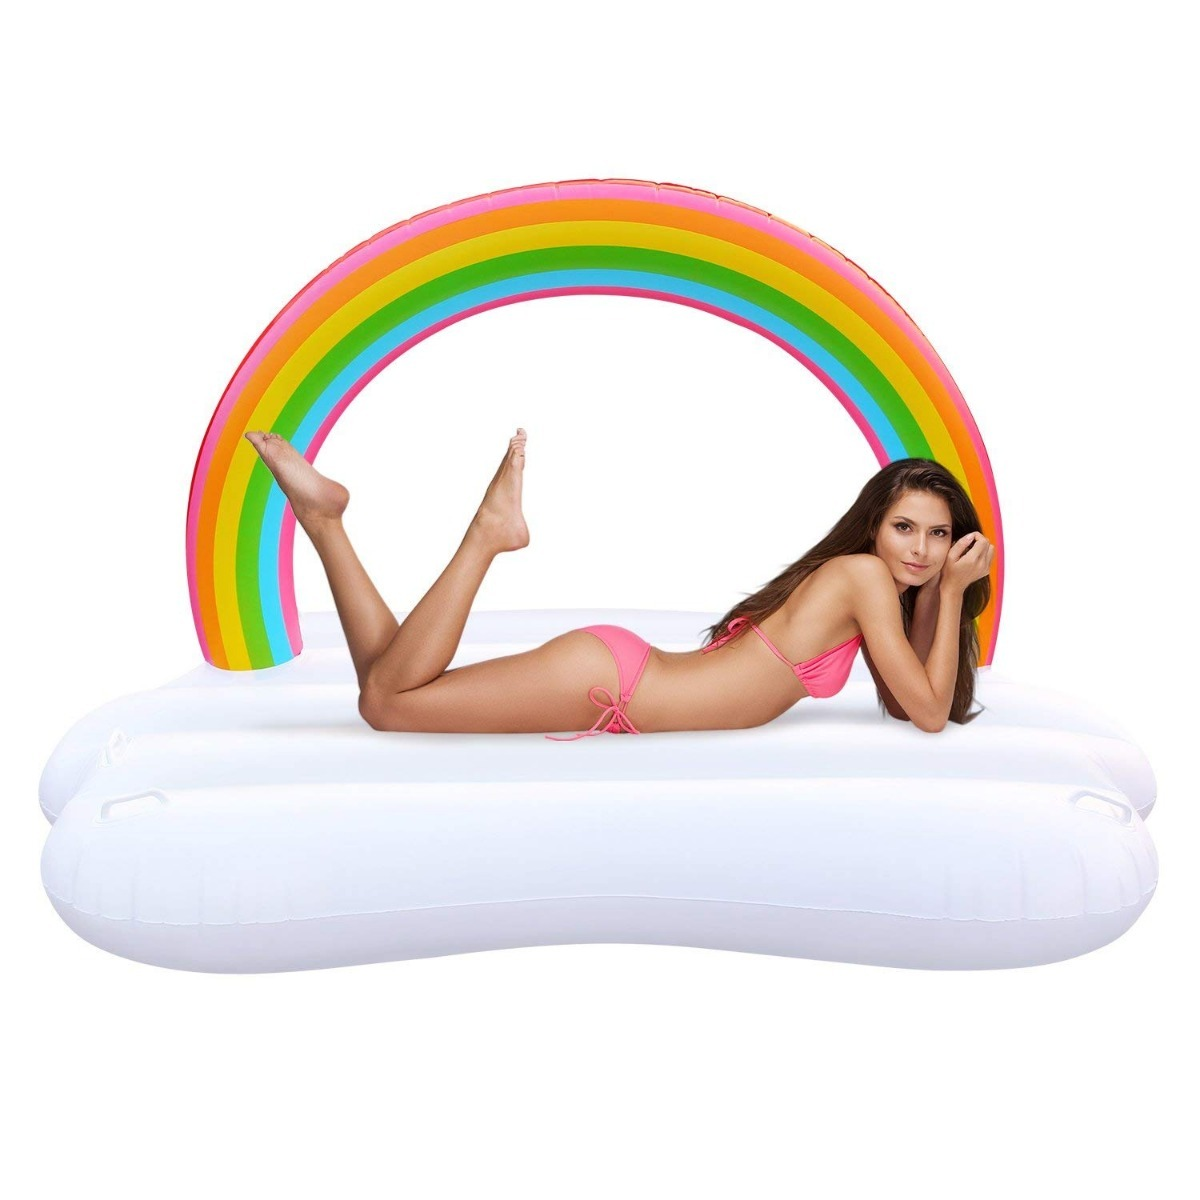 INFLABLE ARCOIRIS GIGANTE